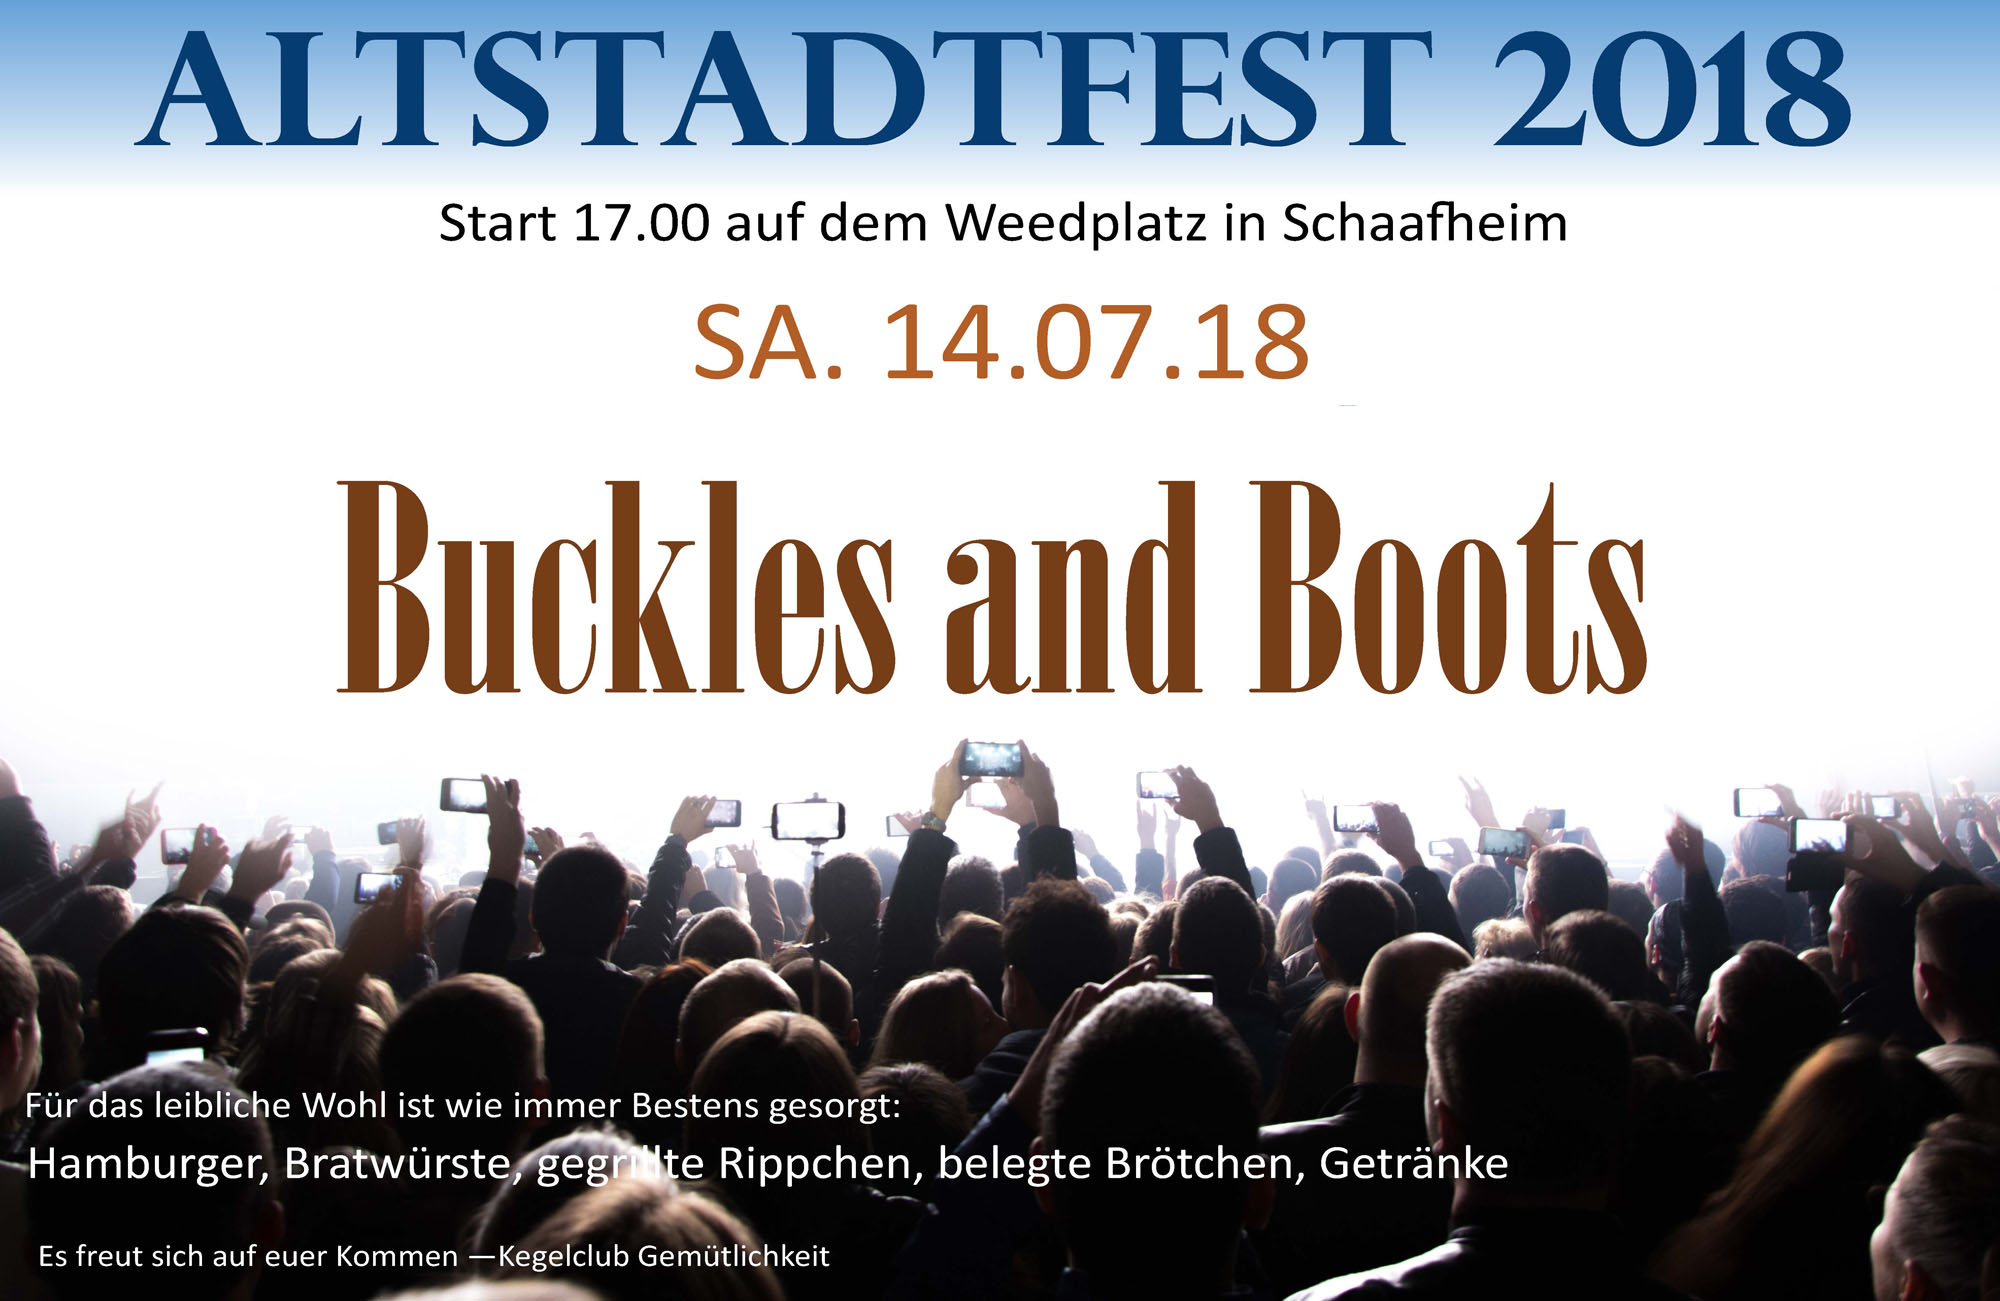 Altstadtfest 2018 mit Buckles and Boots